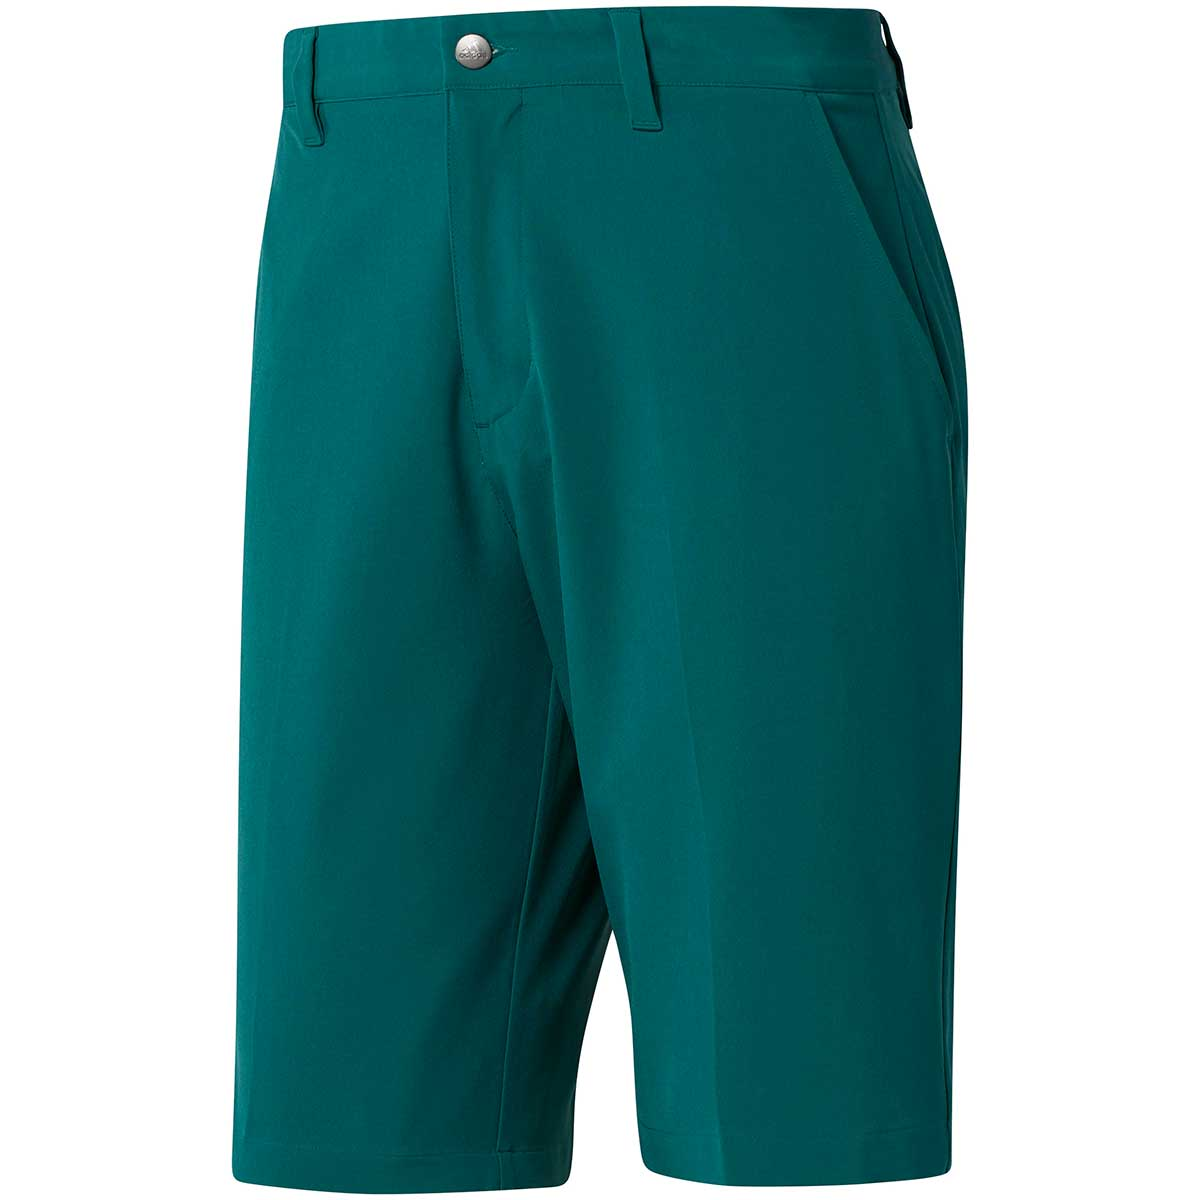 Adidas Men's Ultimate 365 Noble Green Short